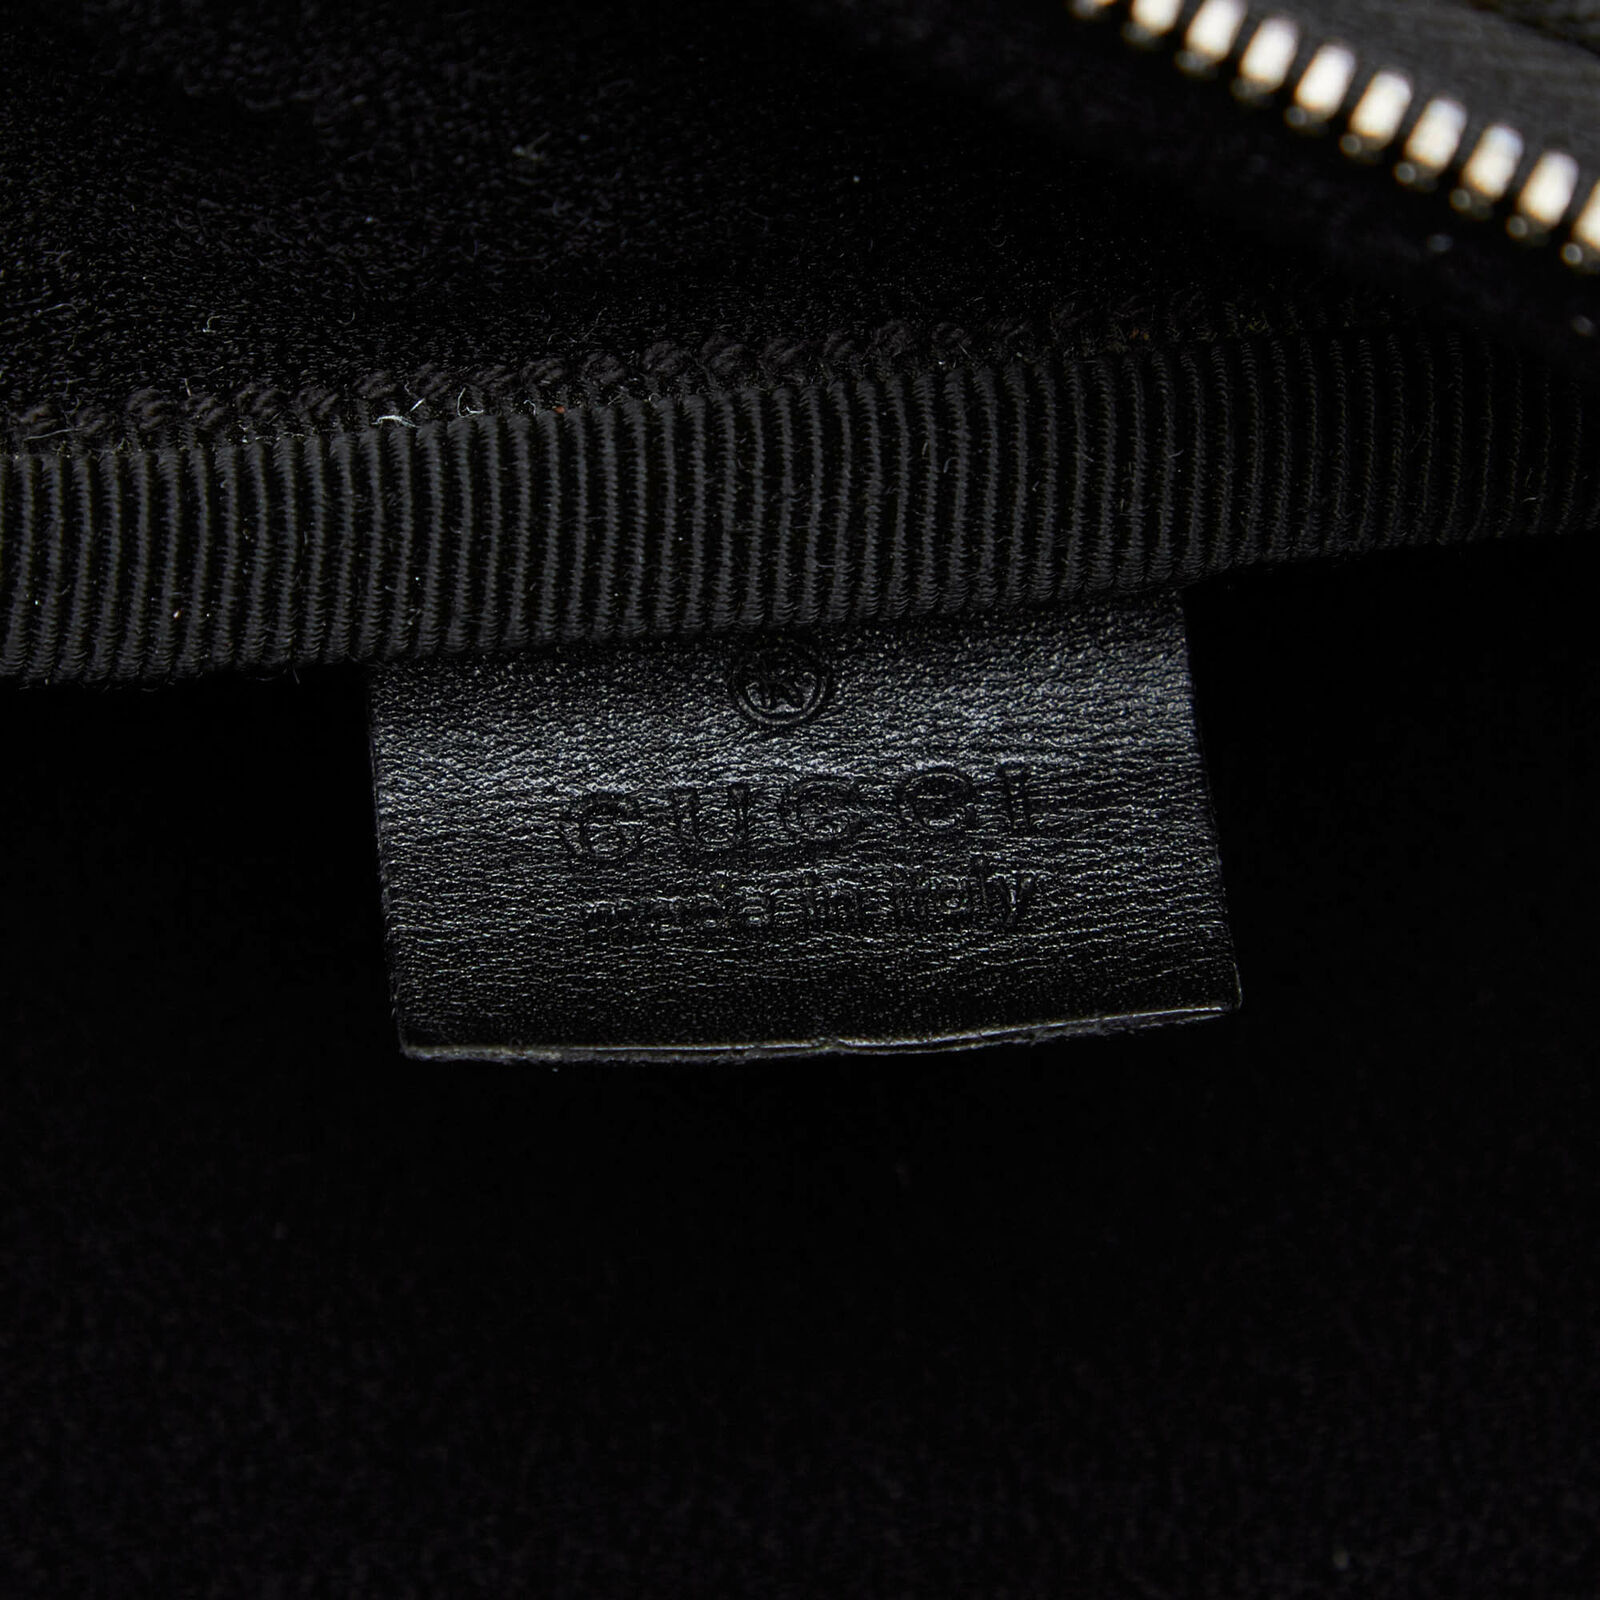 Pre-Loved Gucci Black Nylon Fabric Business Bag Italy